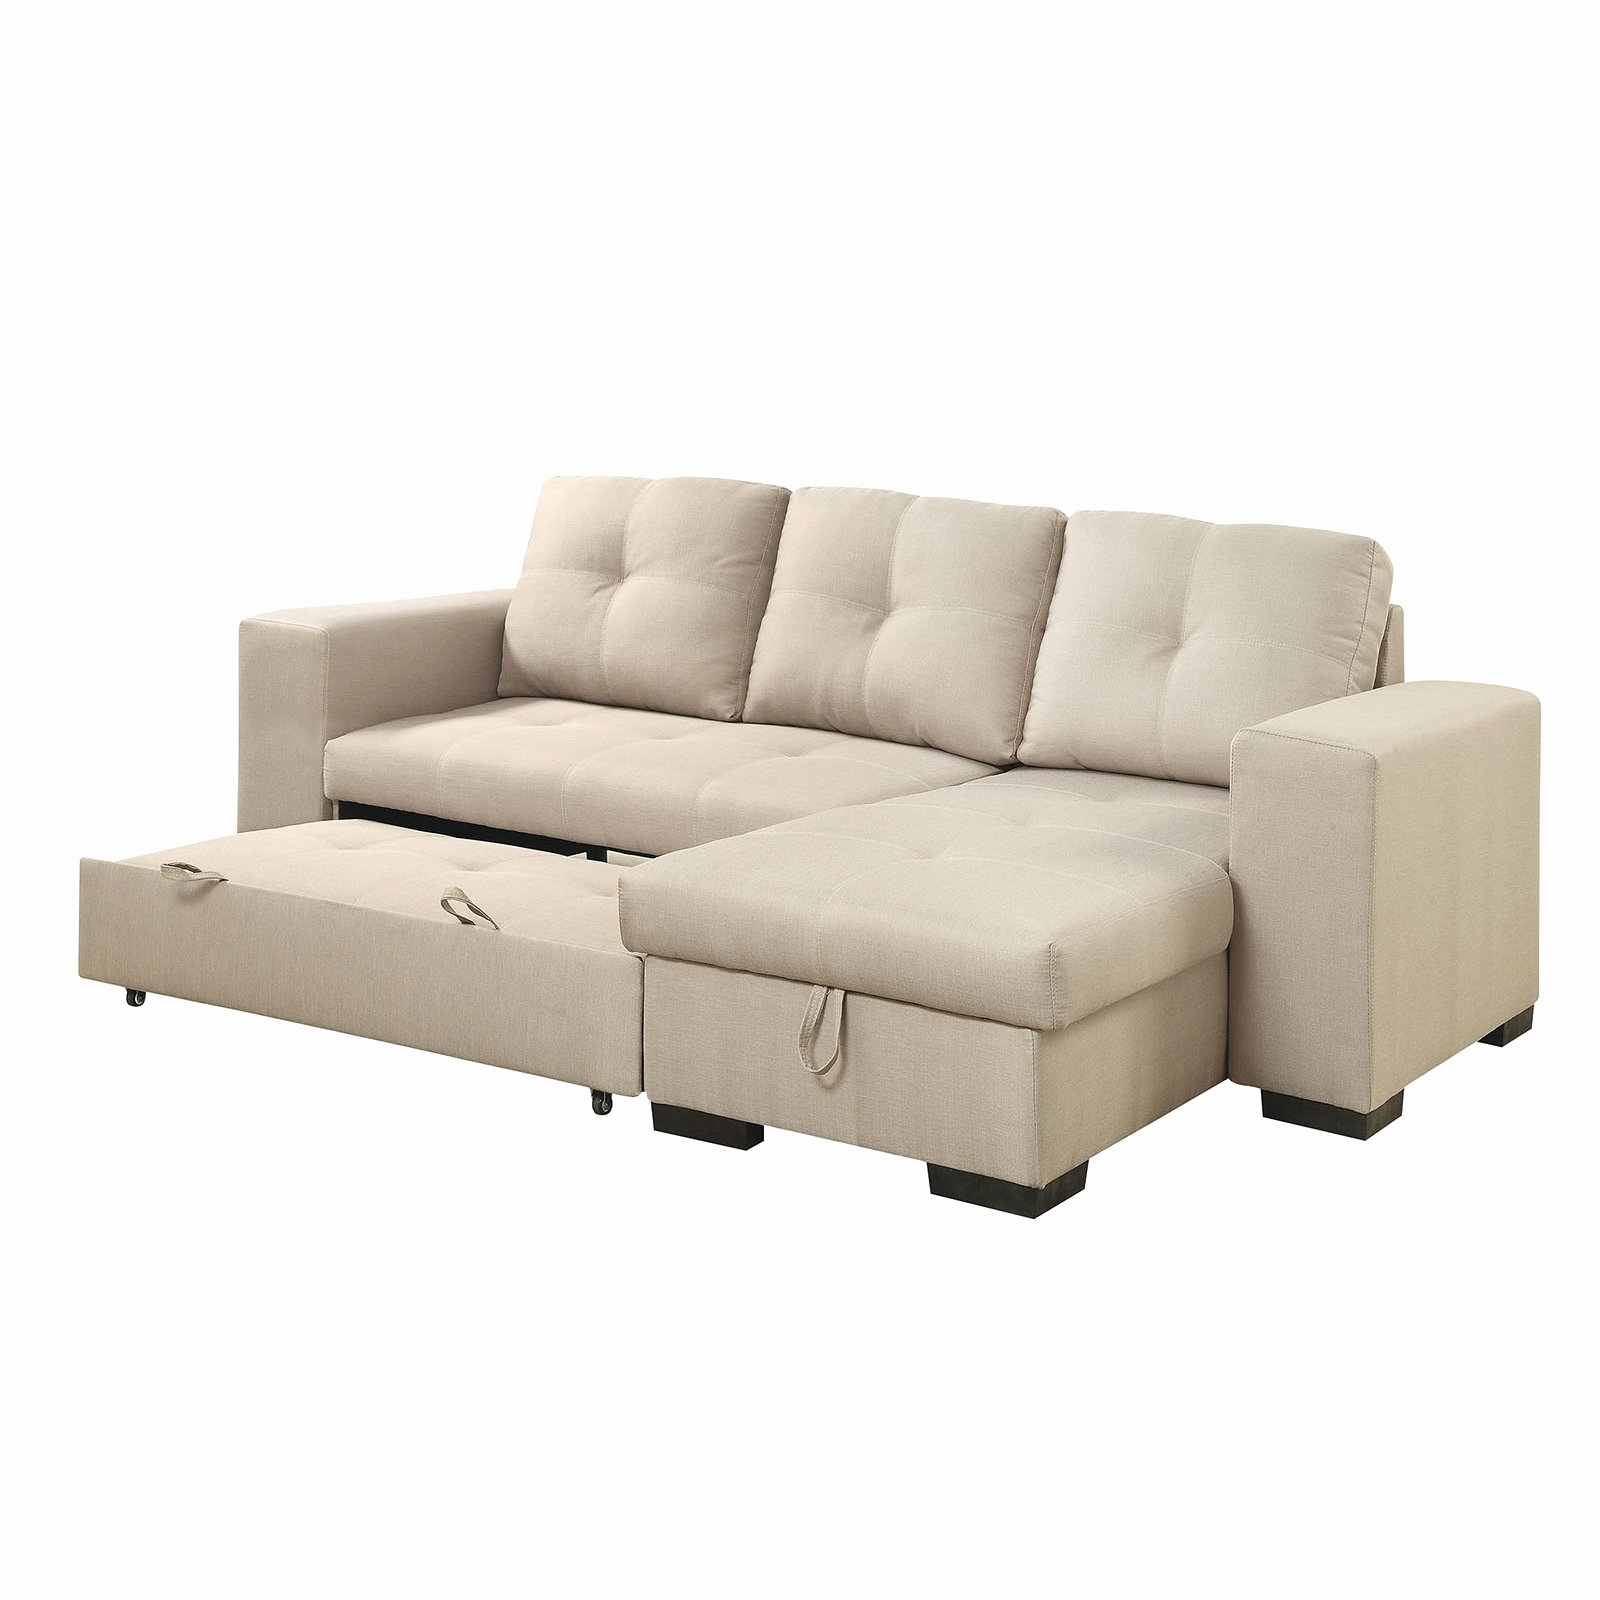 Best Pull Out Couch And Loveseat 2018 – Couches And Sofas Ideas With Regard To Well Known Loveseats With Chaise Lounge (View 4 of 15)